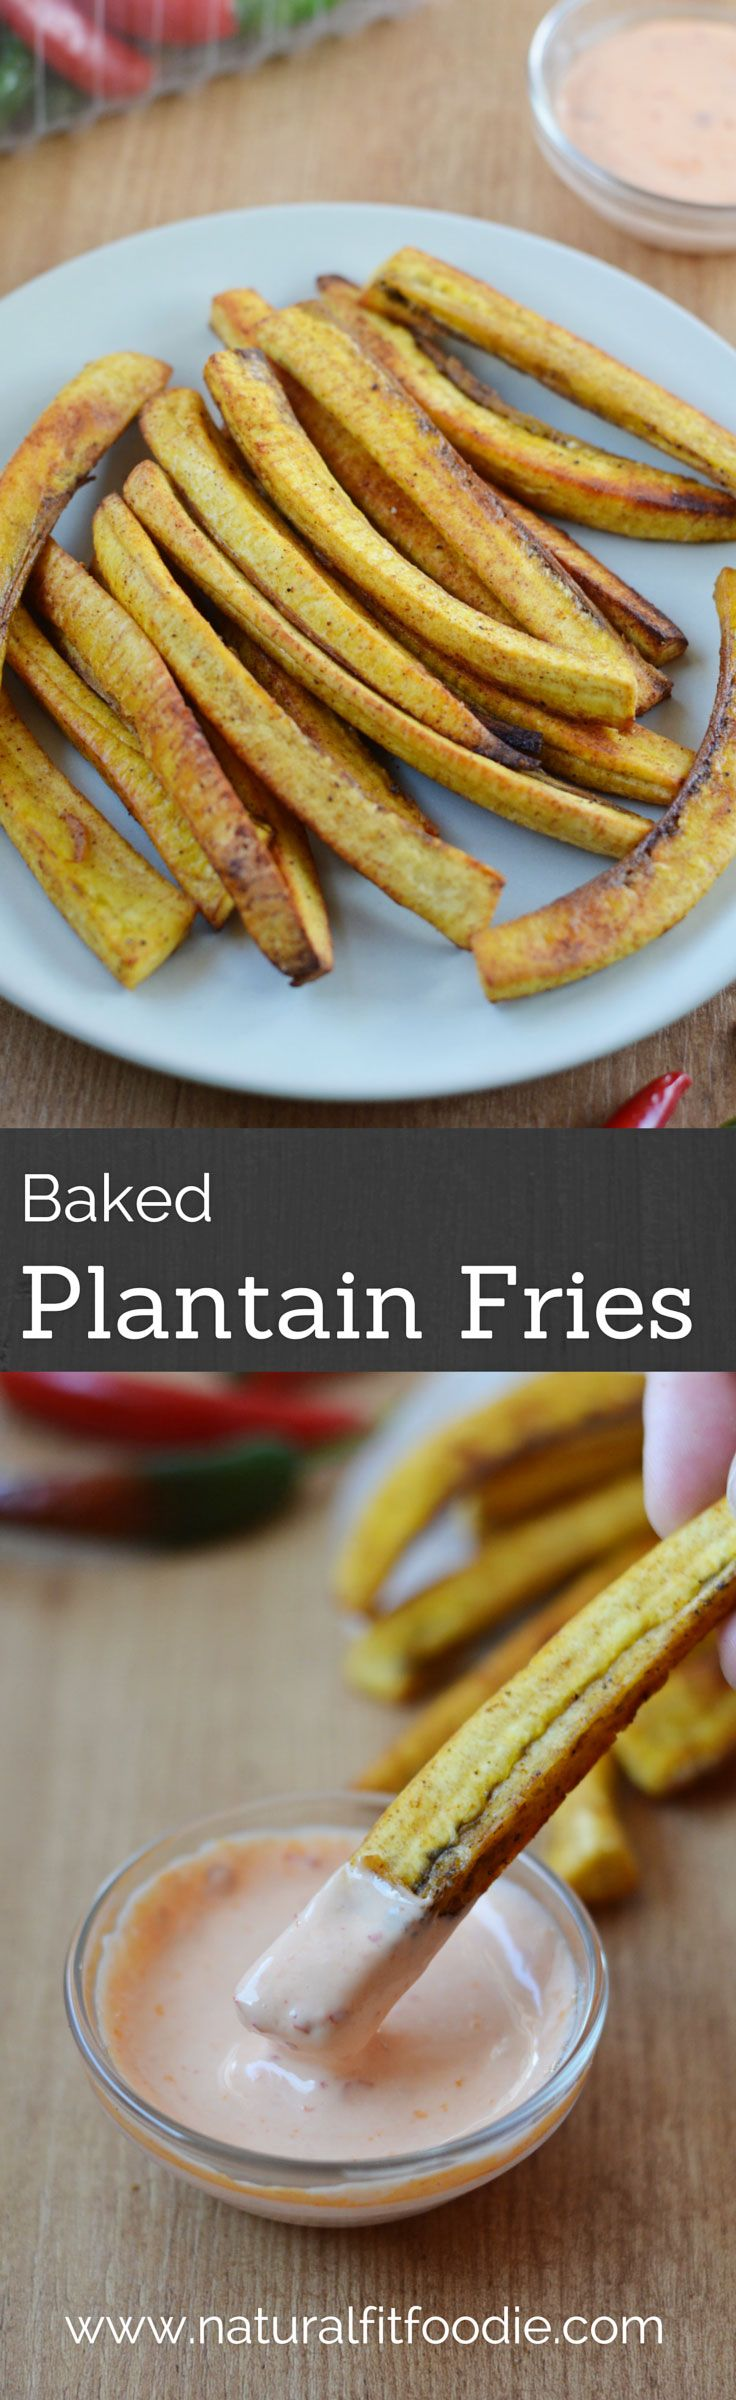 These baked plantain fries are oven fried to crisp perfection. Enjoy as an appetizer or side dish.